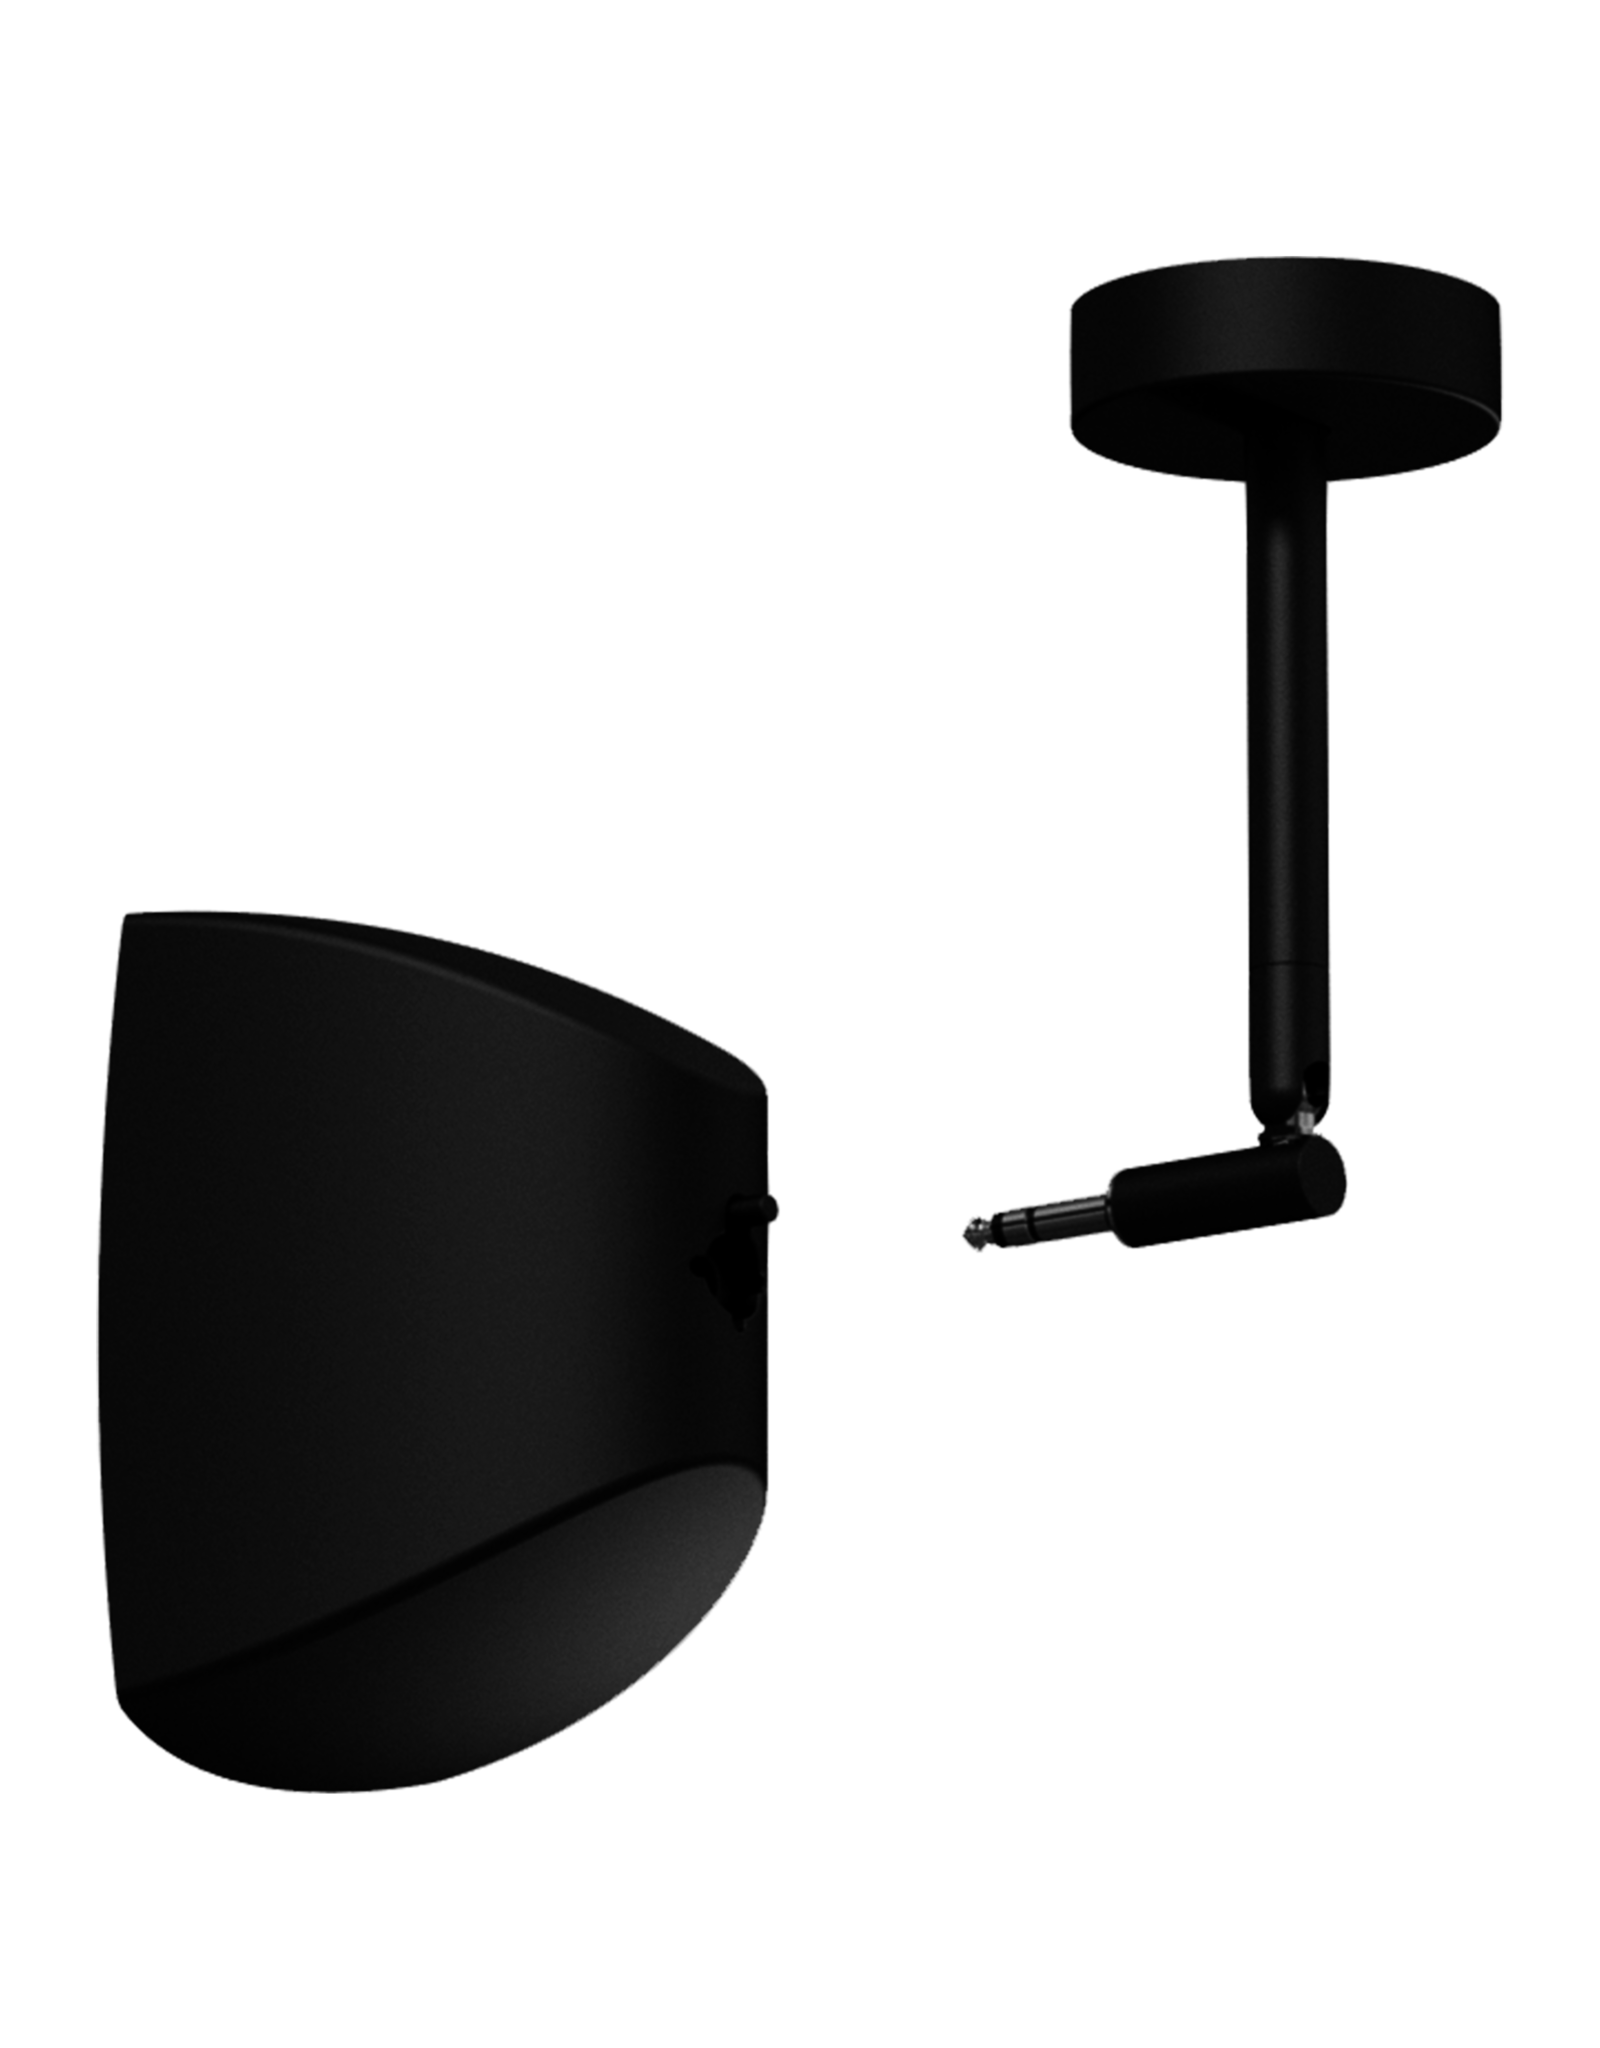 Audac ATEO2 with surface ceiling mount Black version - 16 Ohm